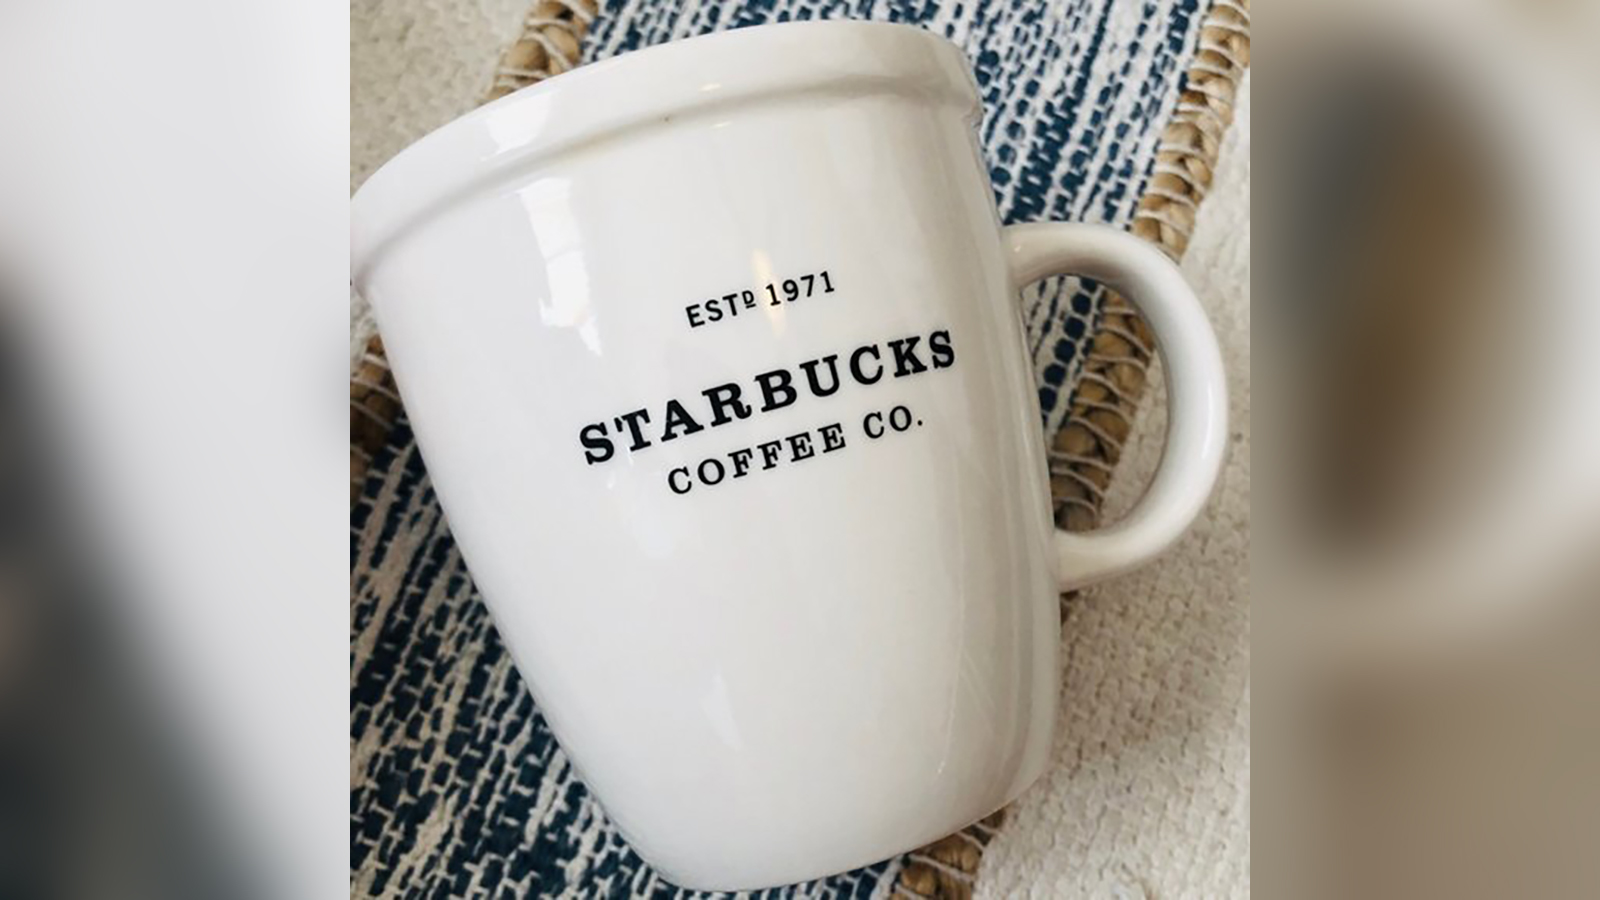 Starbucks mugs and tumblers are in hot demand from bargain hunters